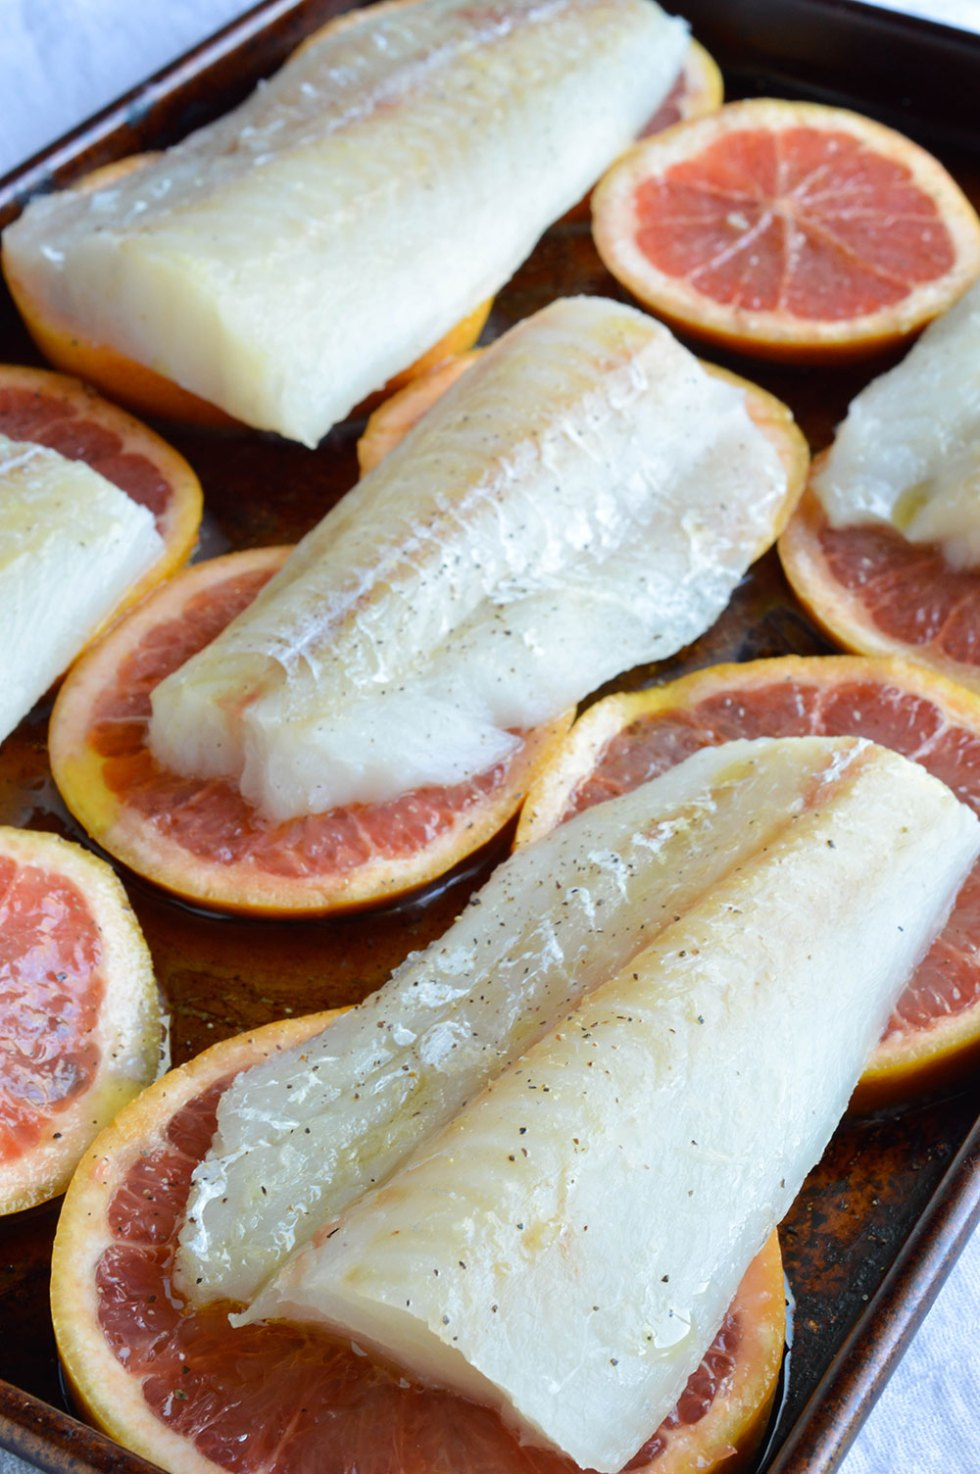 Grapefruit and Honey Glazed Baked Cod Recipe with Creamy Coconut Rice. This bright dinner is quick and easy. Say Goodbye to boring old fried fish and Hello to healthy, flavorful oven baked cod fillet!